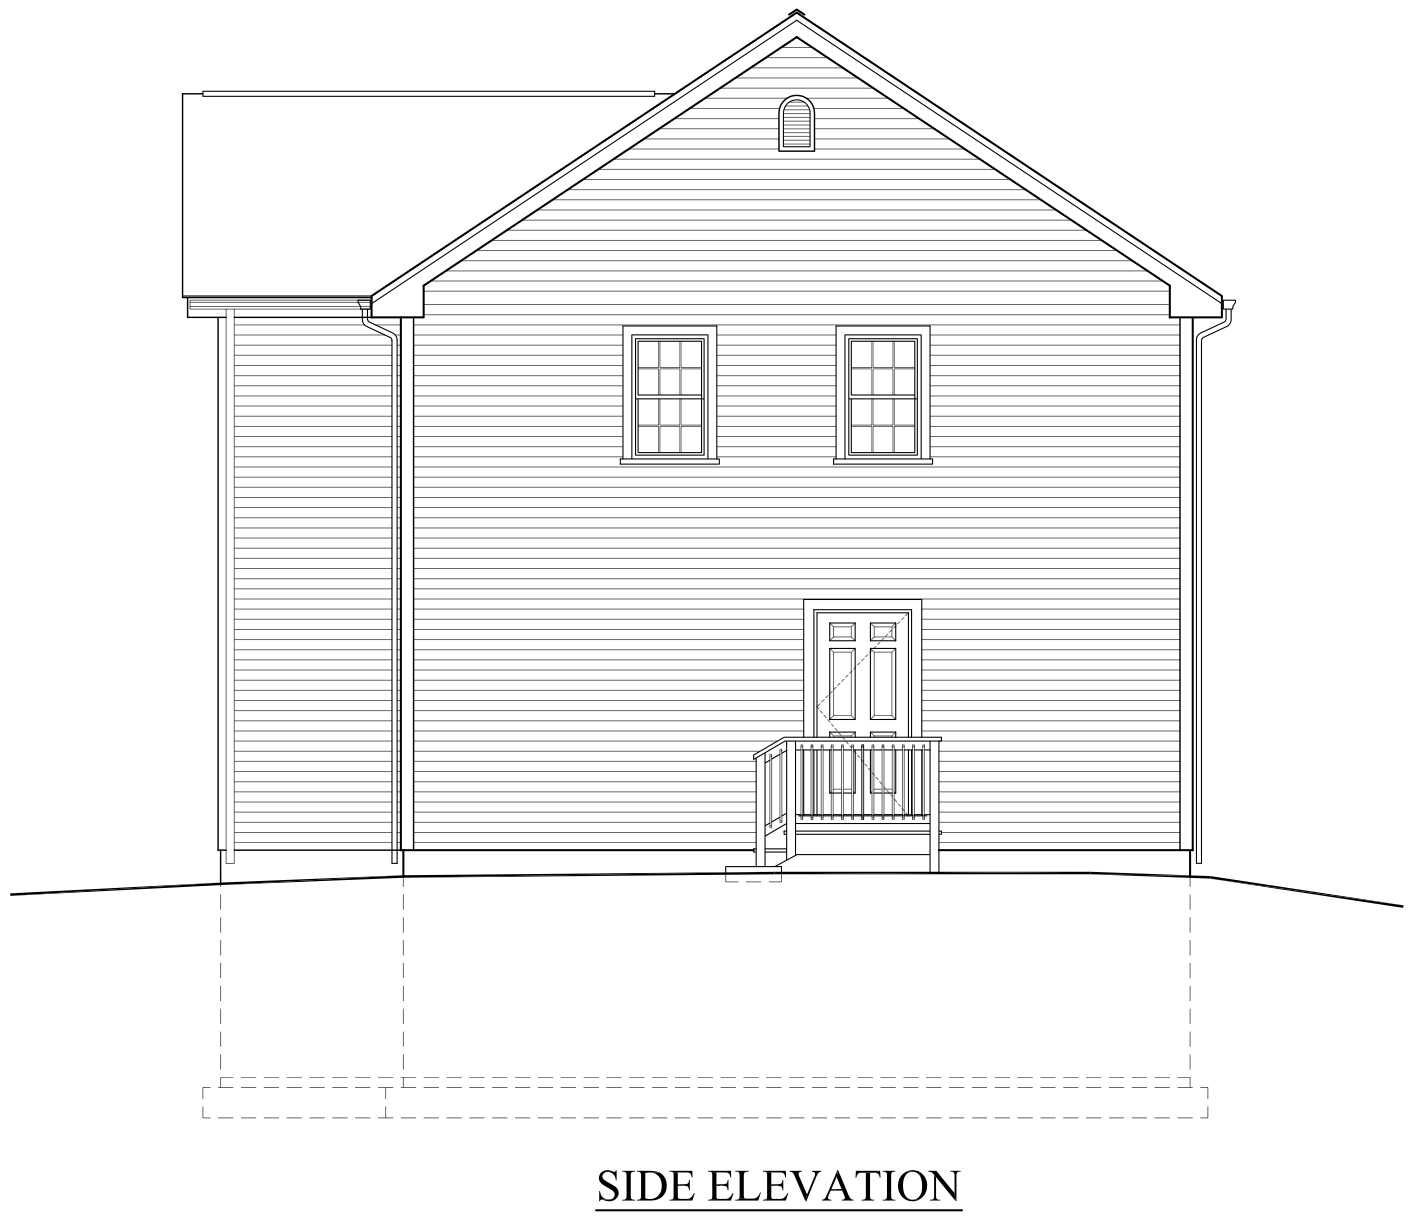 Plan Elevation End View : What is front elevation